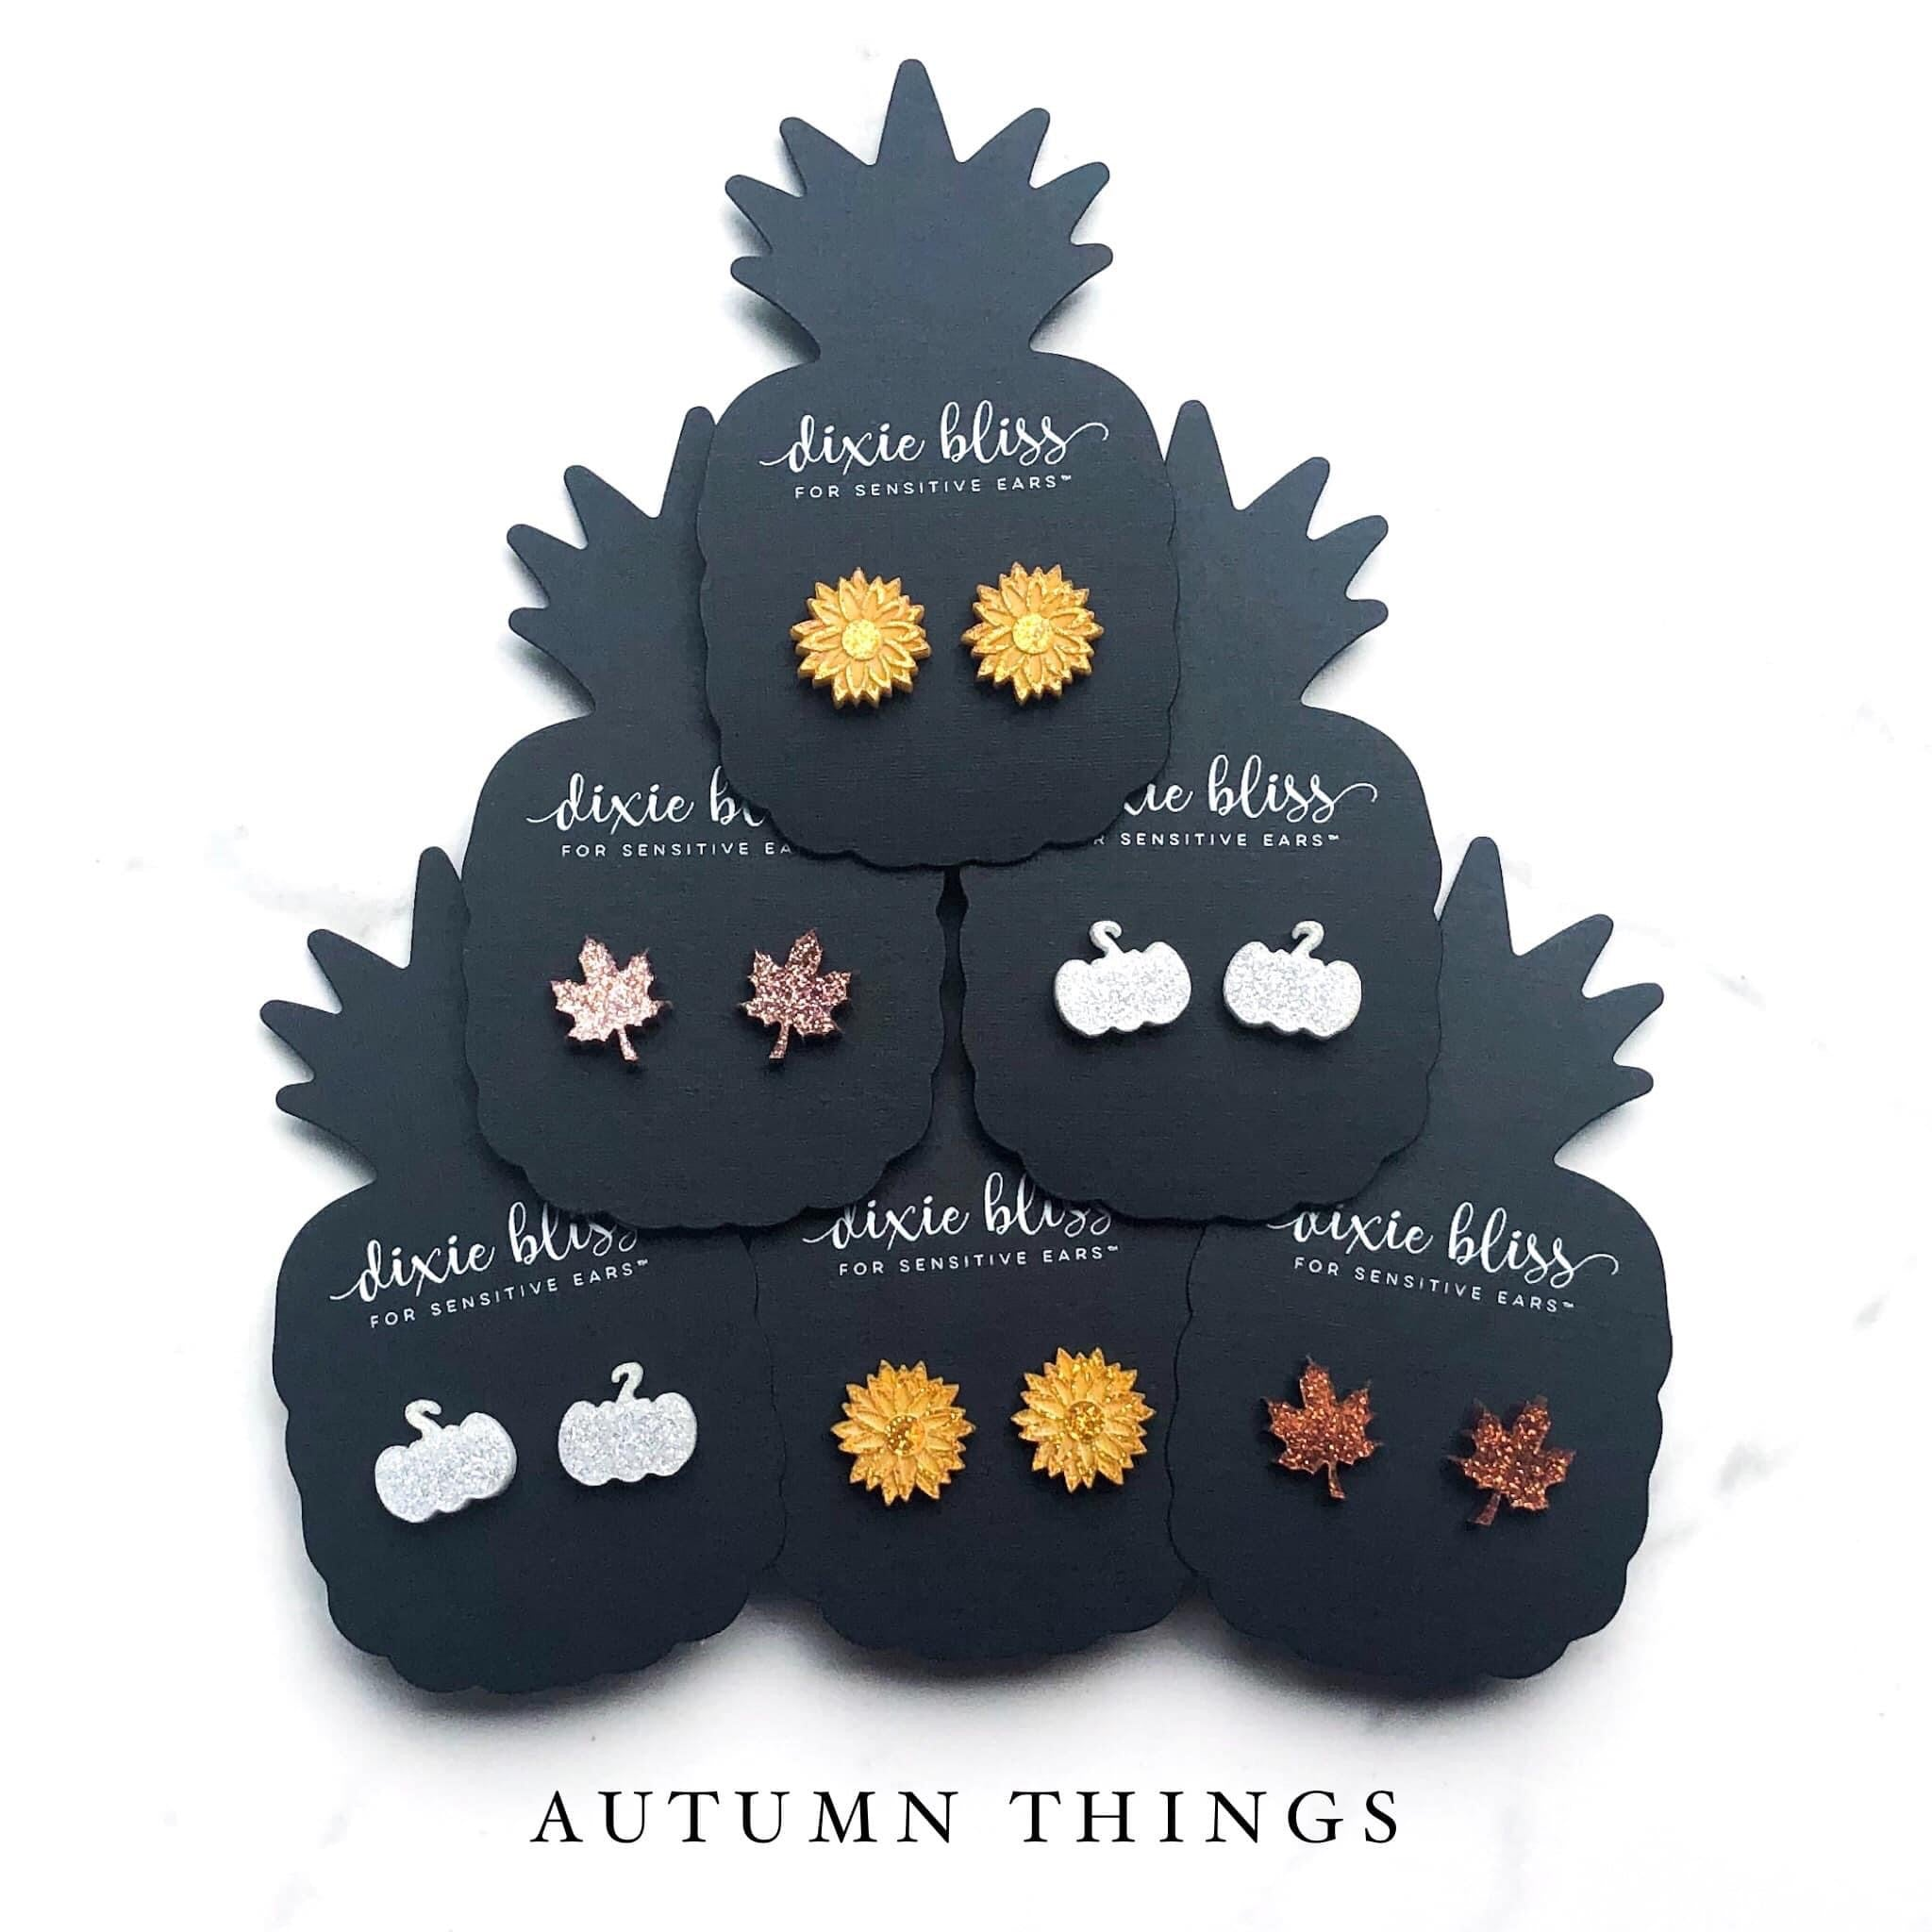 Autumn Things - Dixie Bliss Luxuries